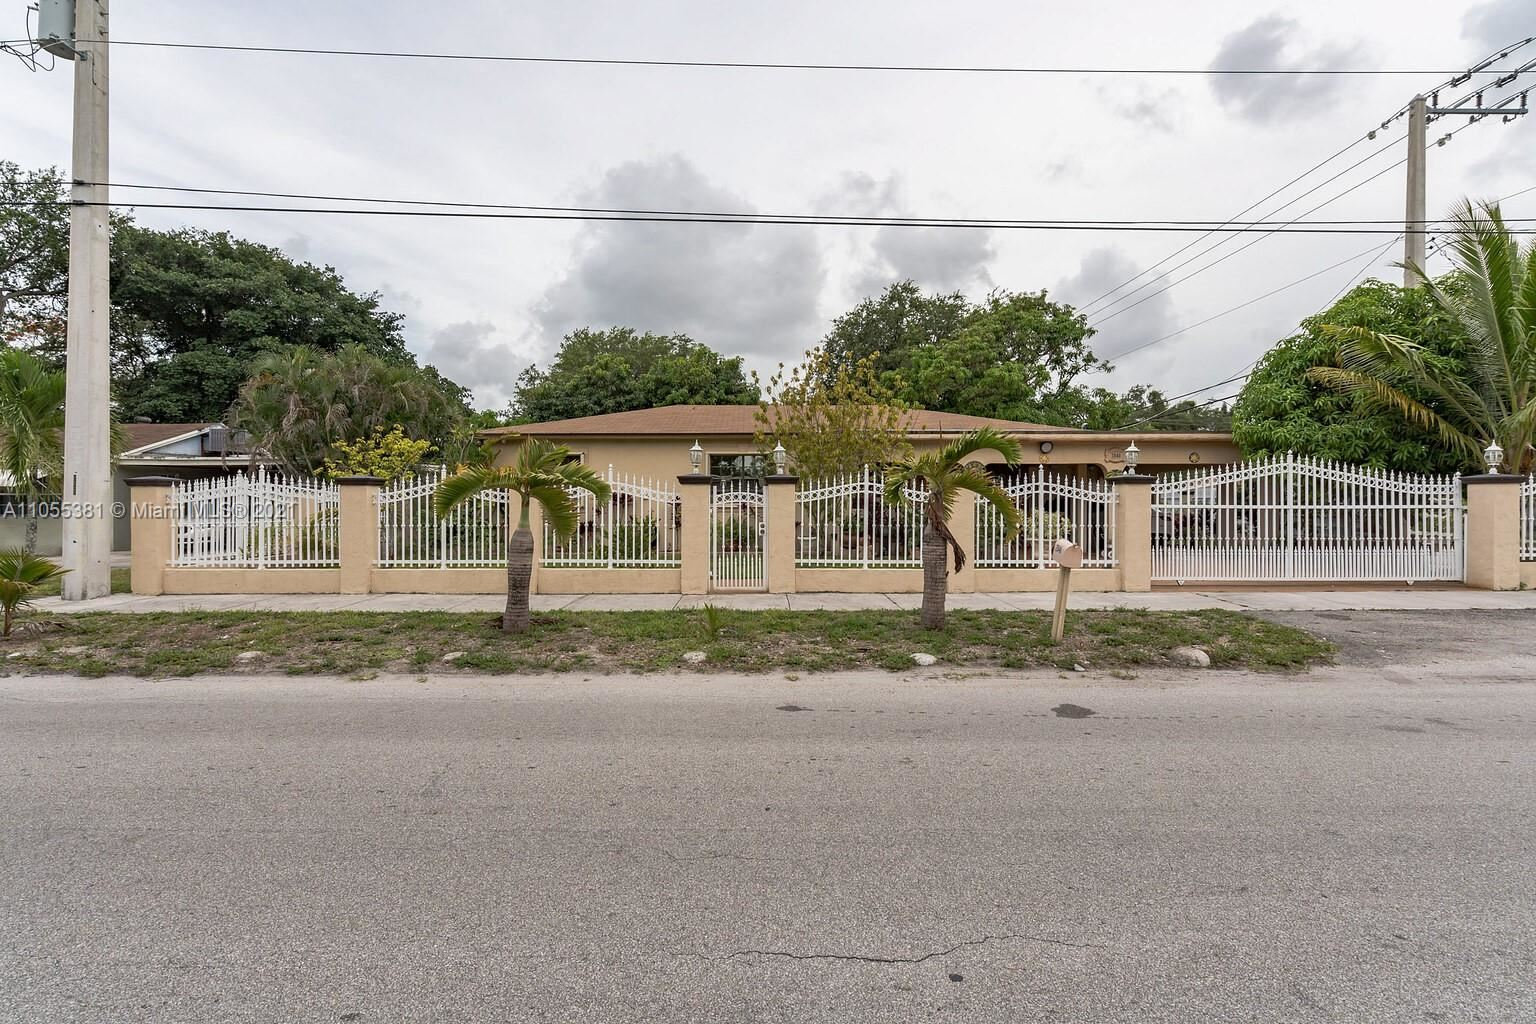 2046 NW 92nd St, Miami, FL 33147 - #: A11055381